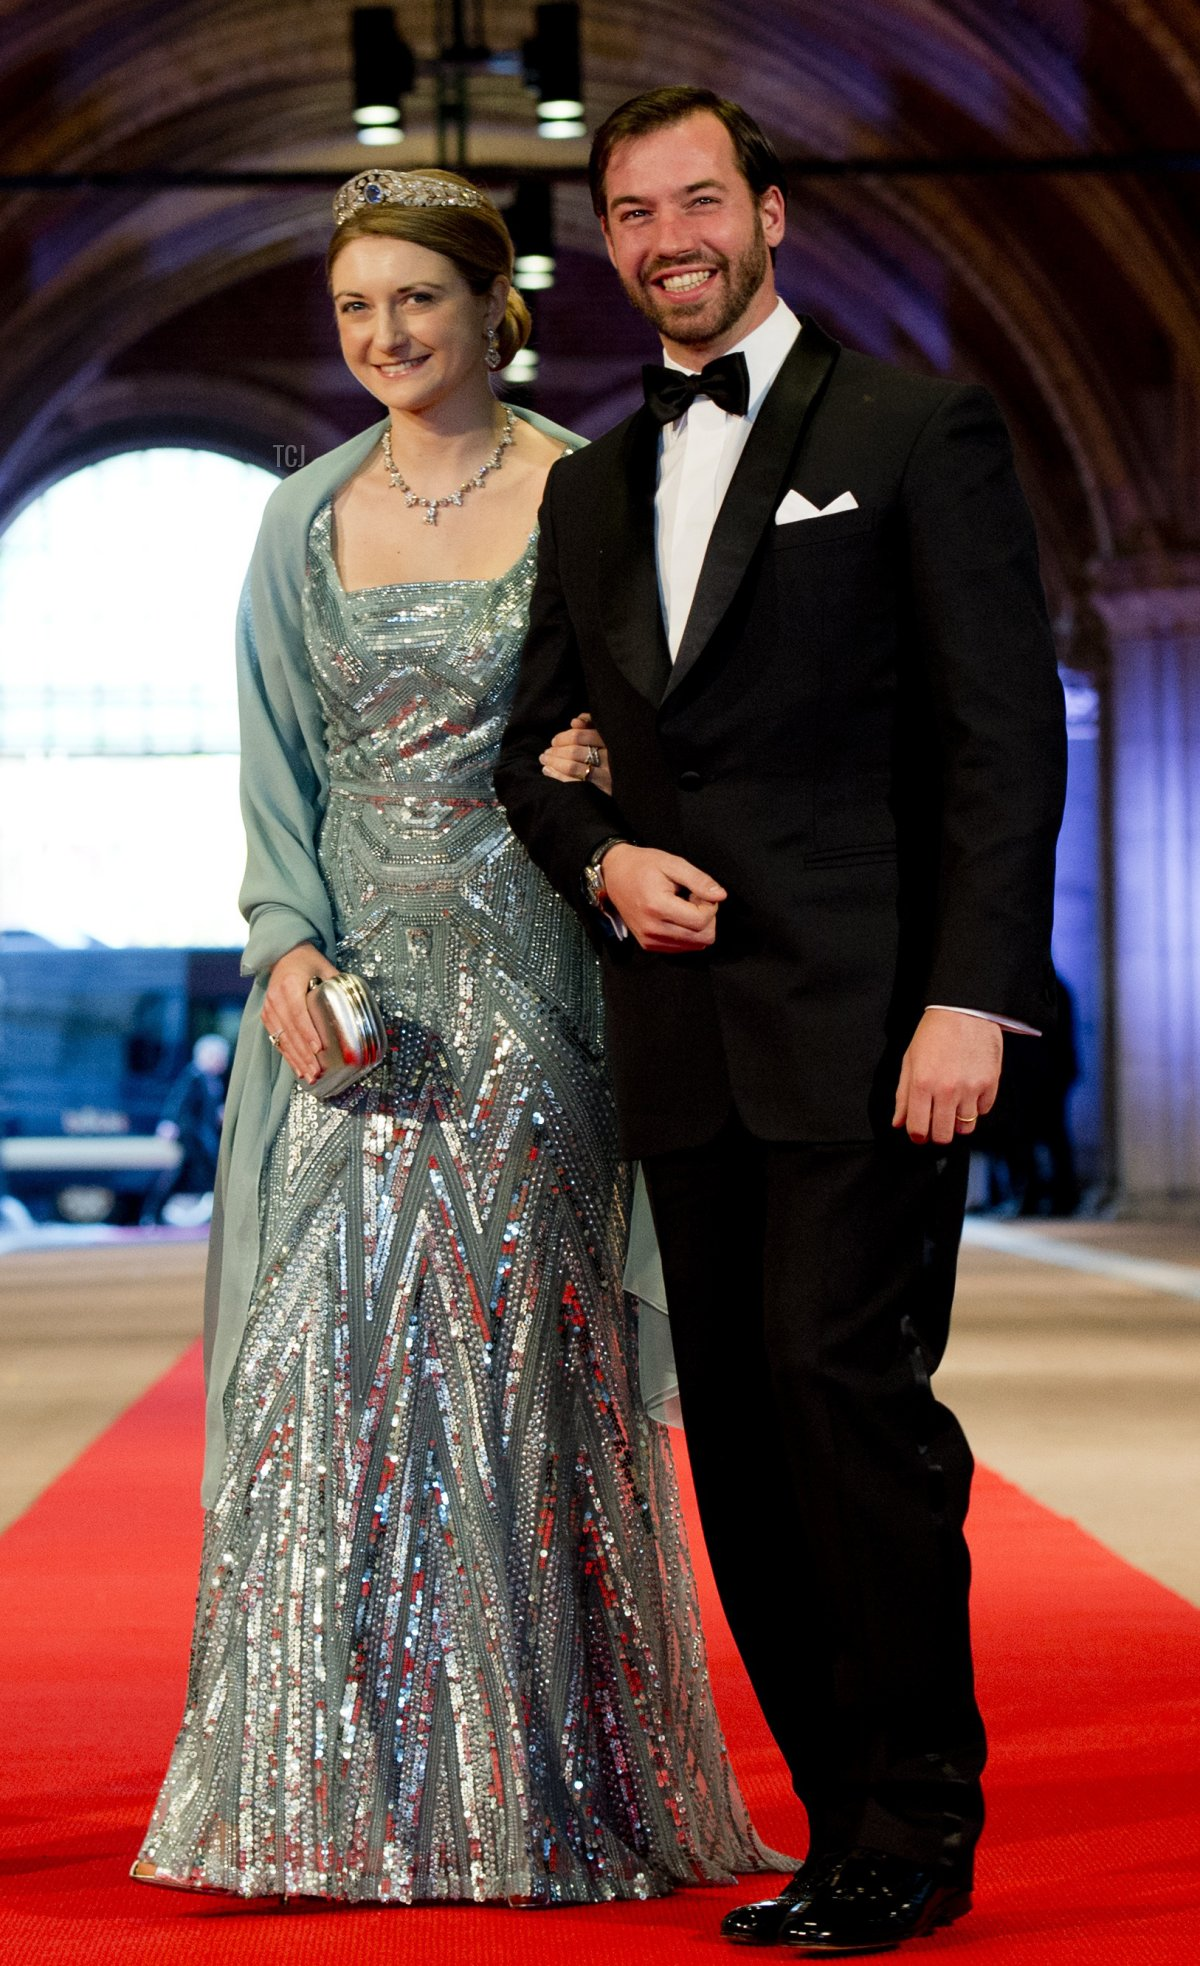 Luxembourg's Grand Duke Guillaume (R), his wife Grand Duchess Stephanie pose on April 29, 2013 as they arrive to attend a dinner at the National Museum (Rijksmuseum) in Amsterdam hosted by Queen Beatrix of the Netherlands on the eve of her abdication